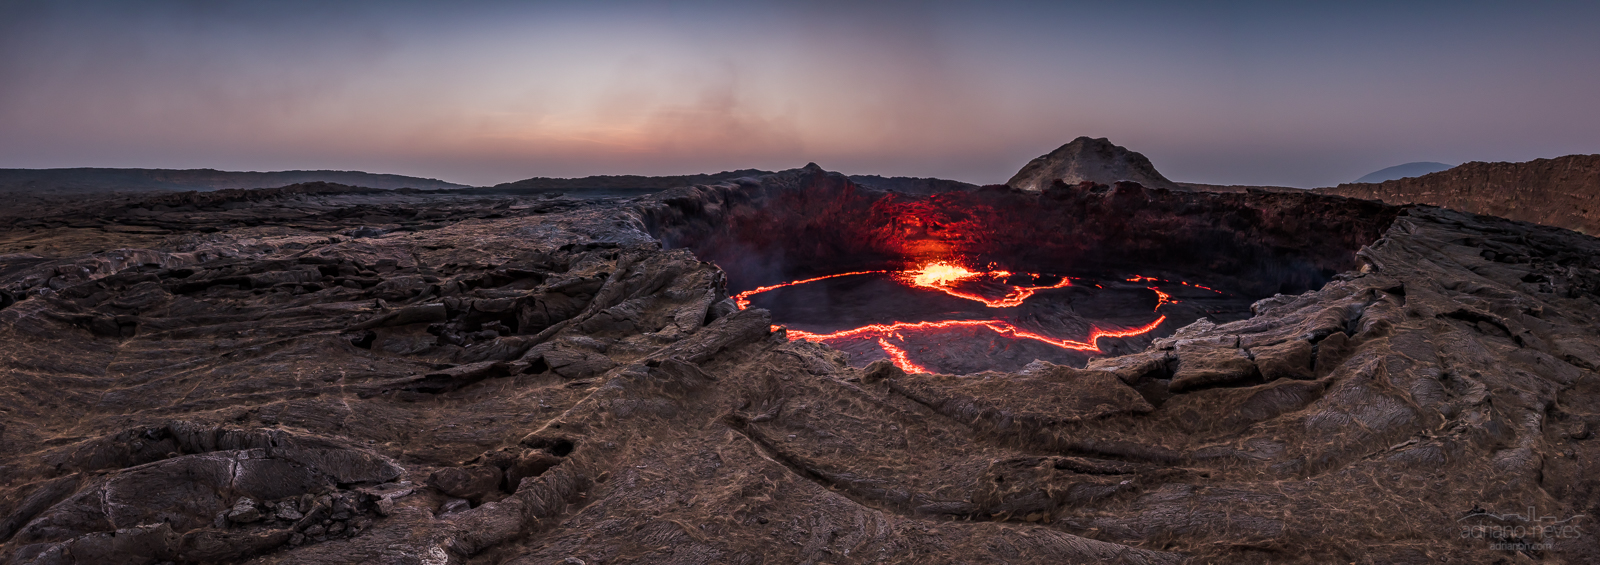 A lava lake vulcano in Africa, early morning.